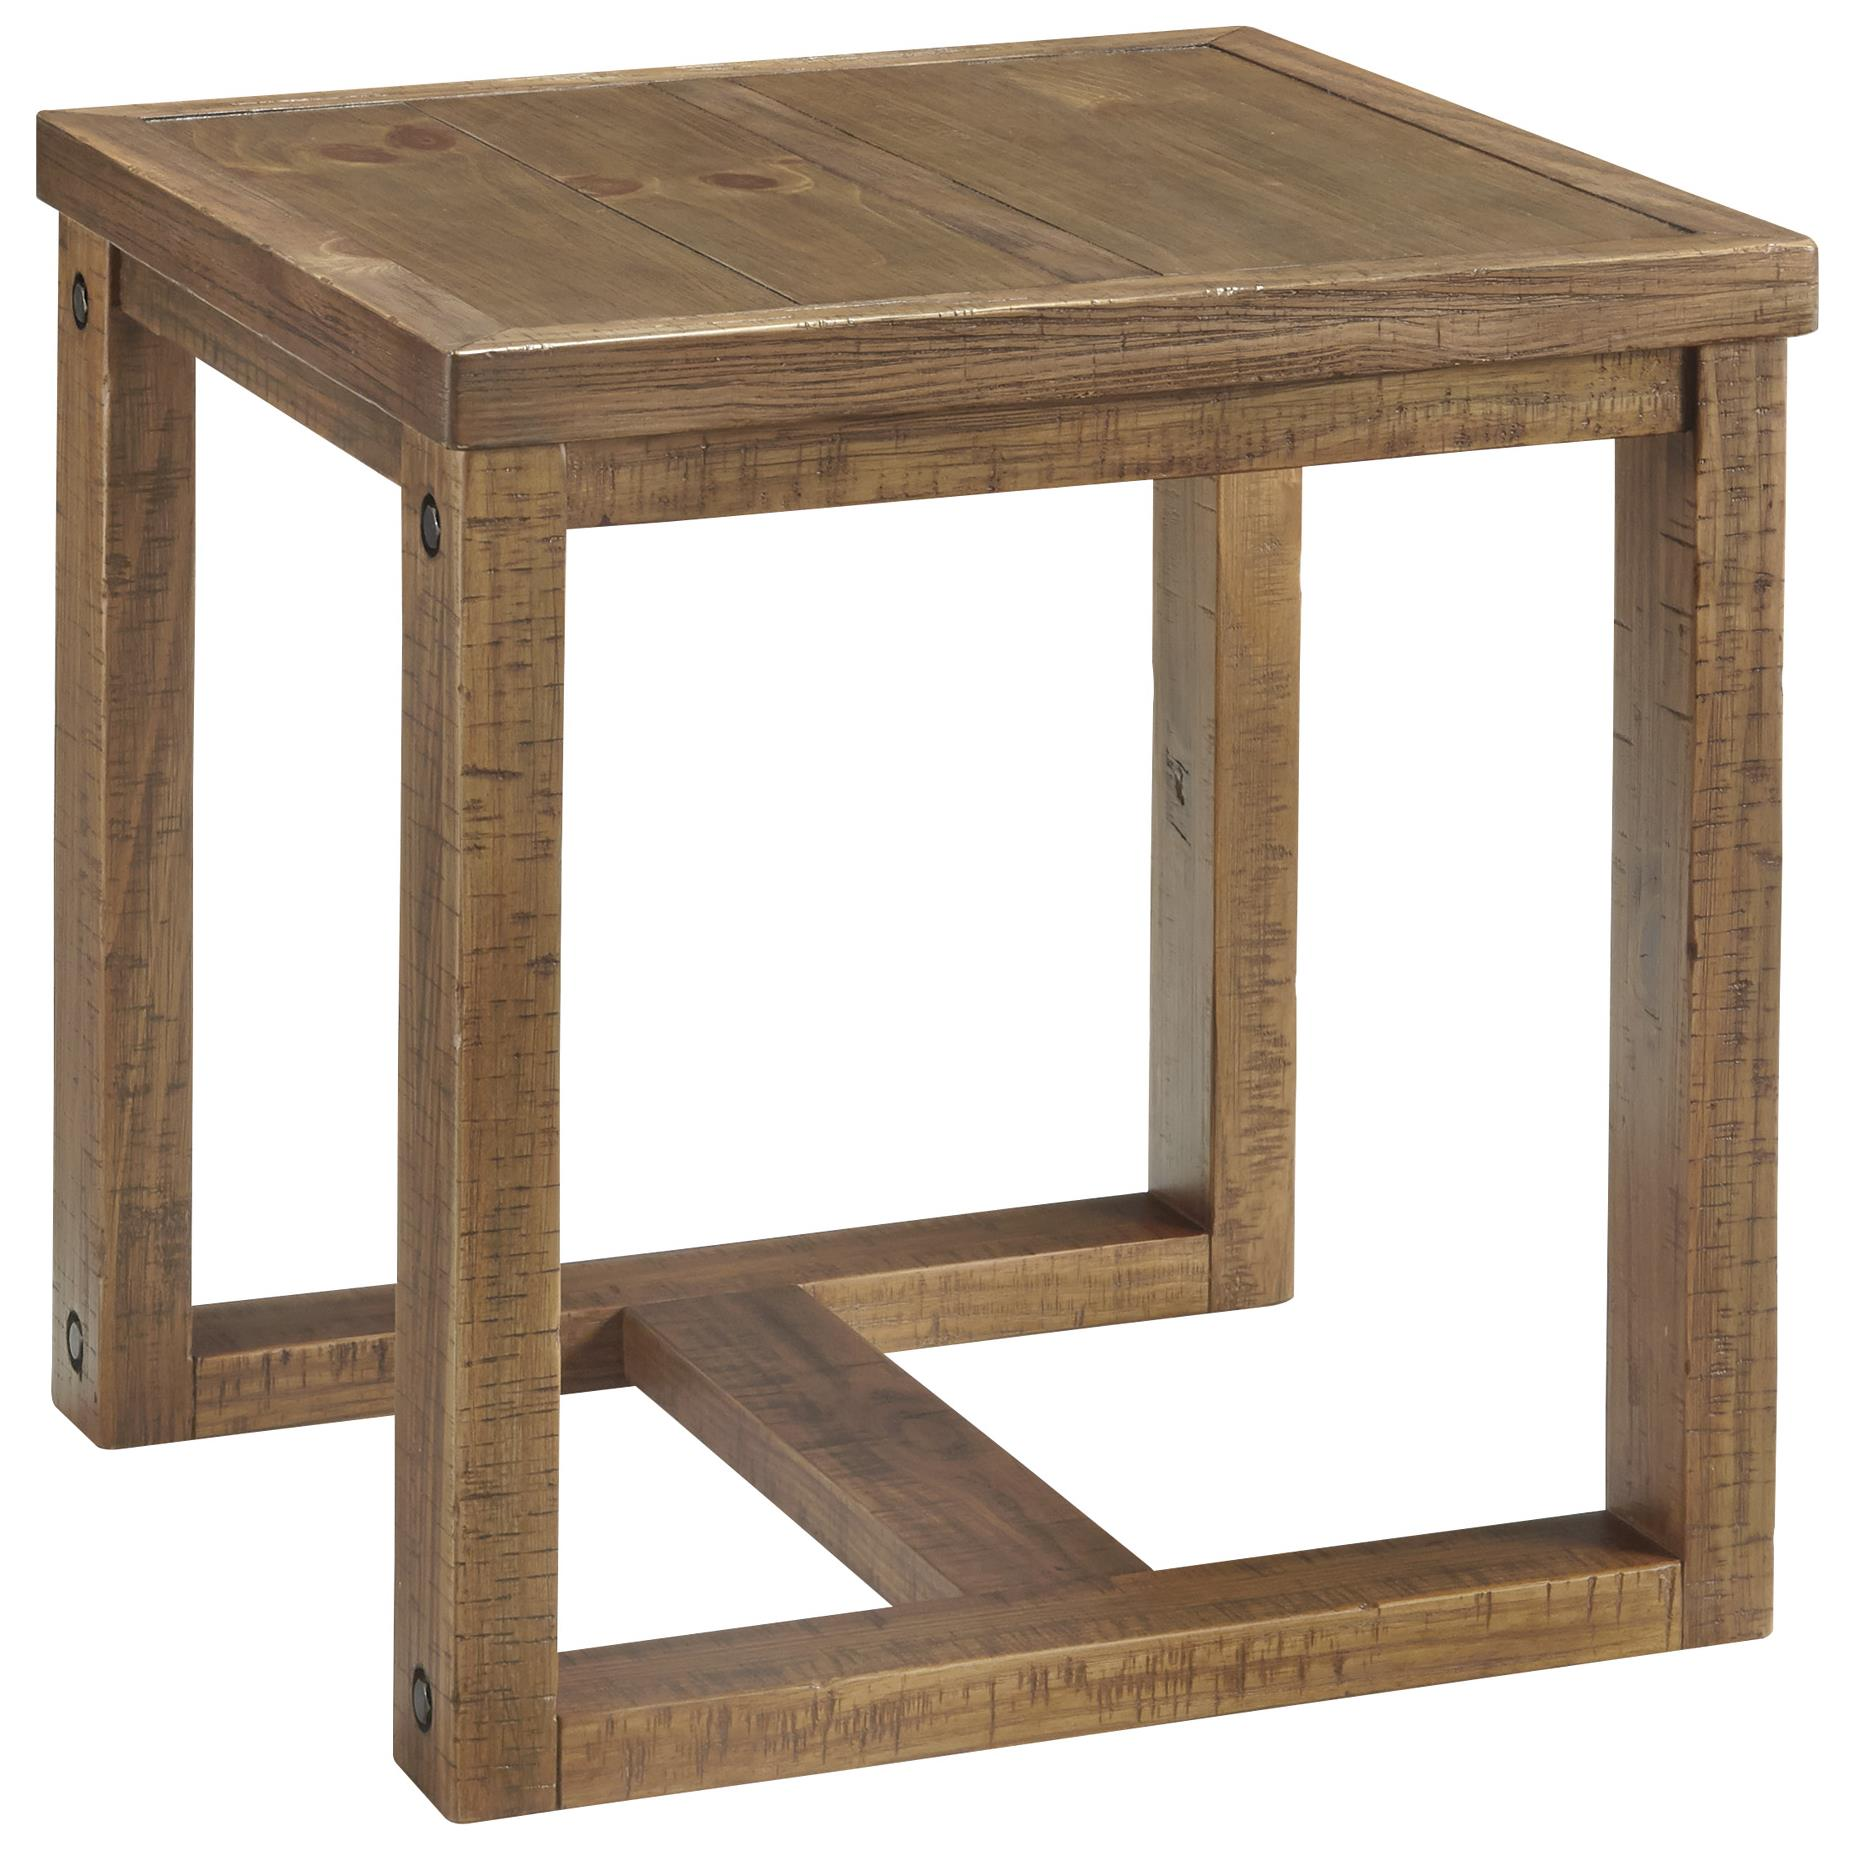 Signature Design by Ashley Tamilo Square End Table - Item Number: T715-2